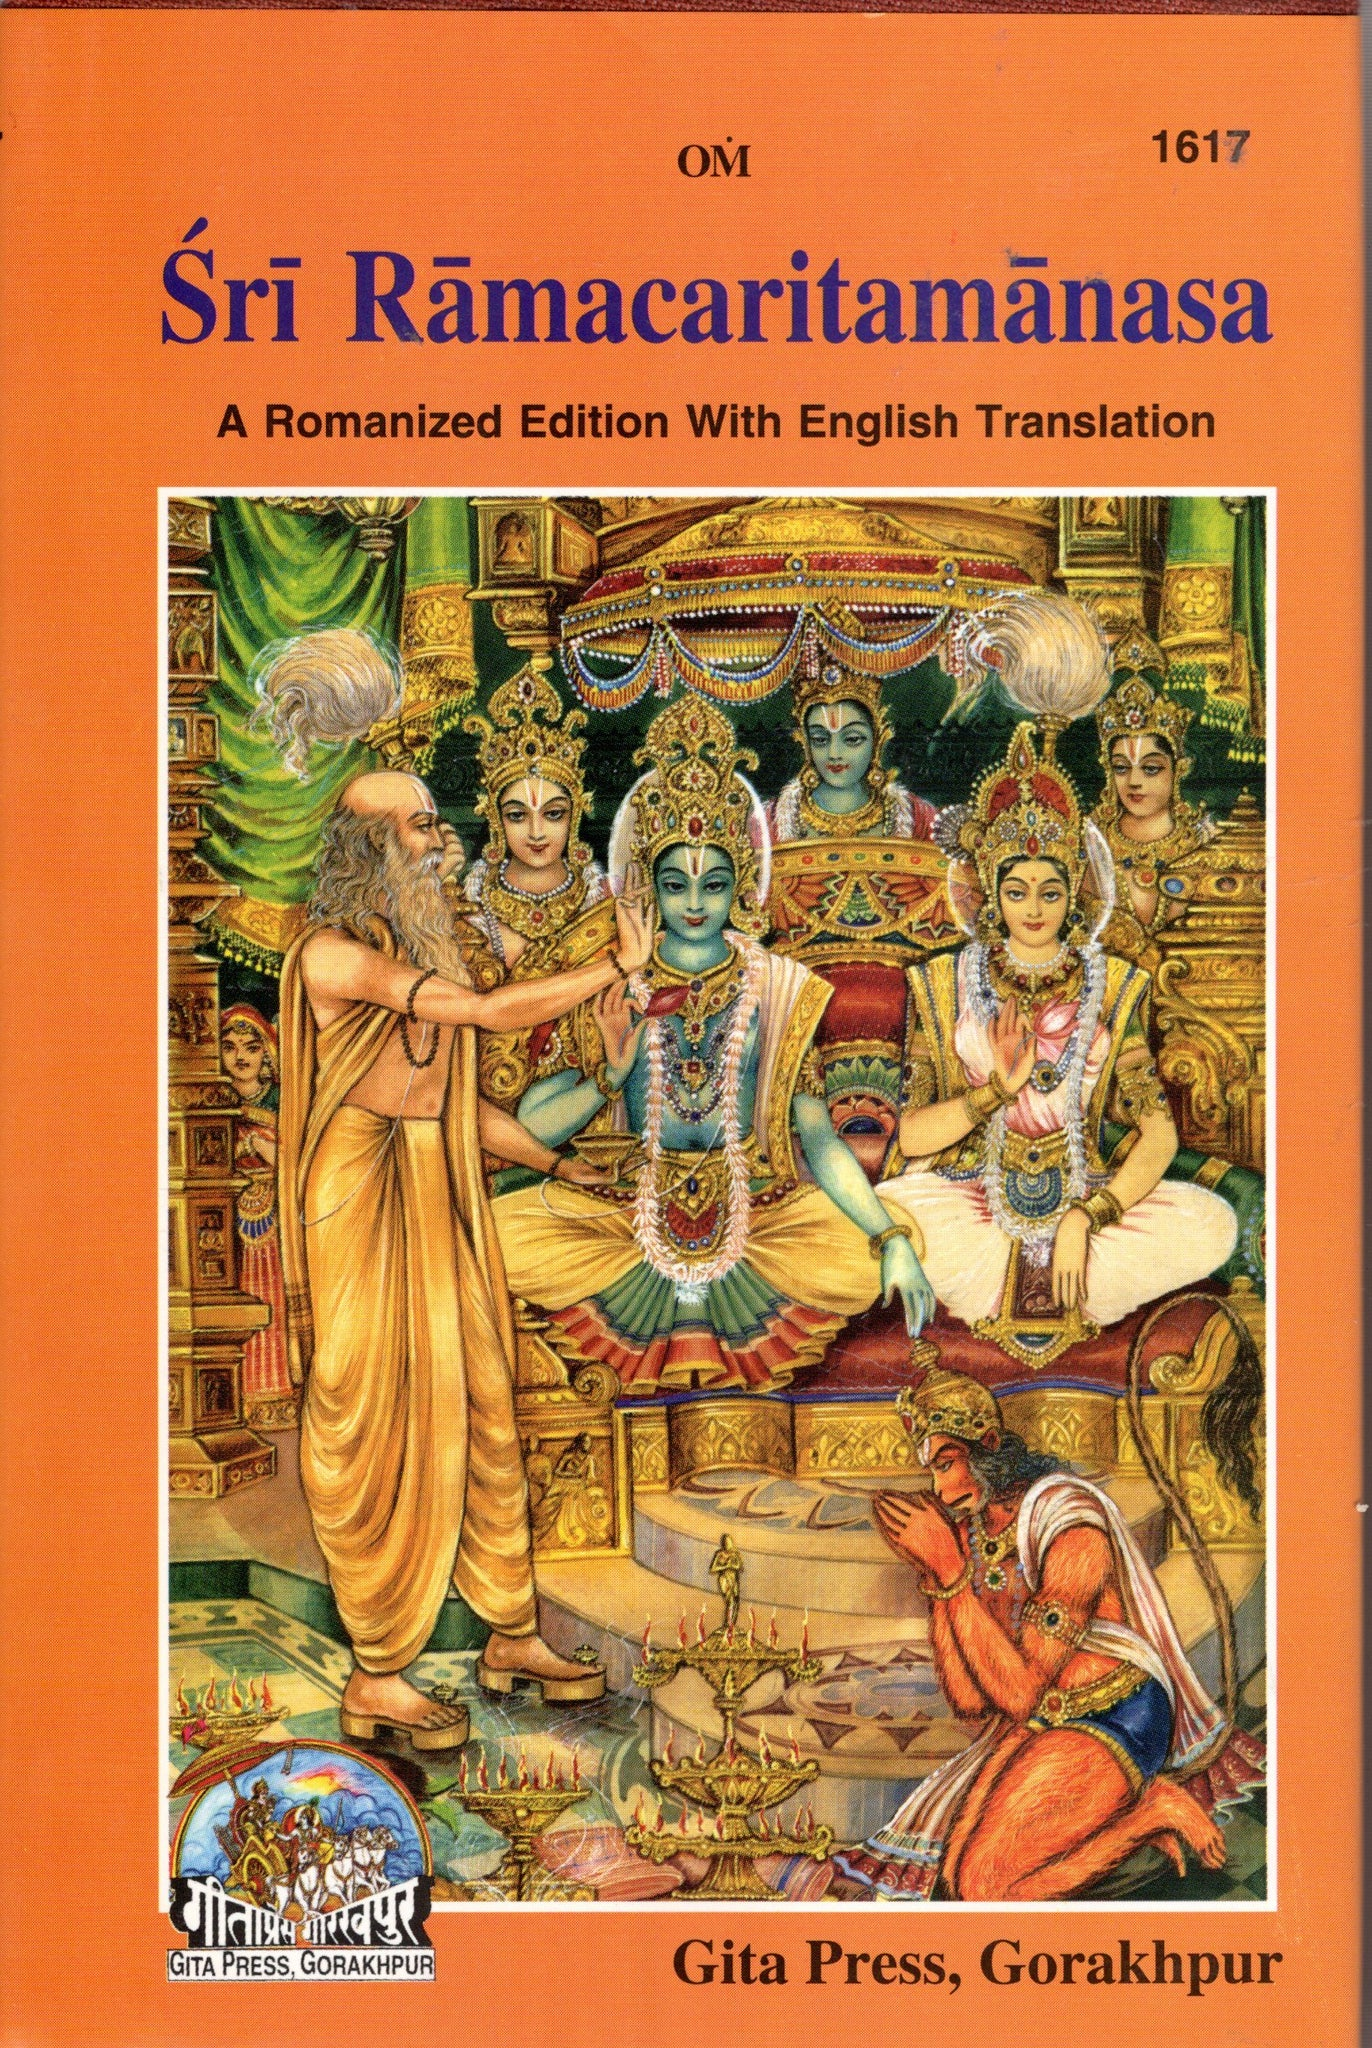 Sri Ramacaritamanasa - A Romanized Edition with English Translation